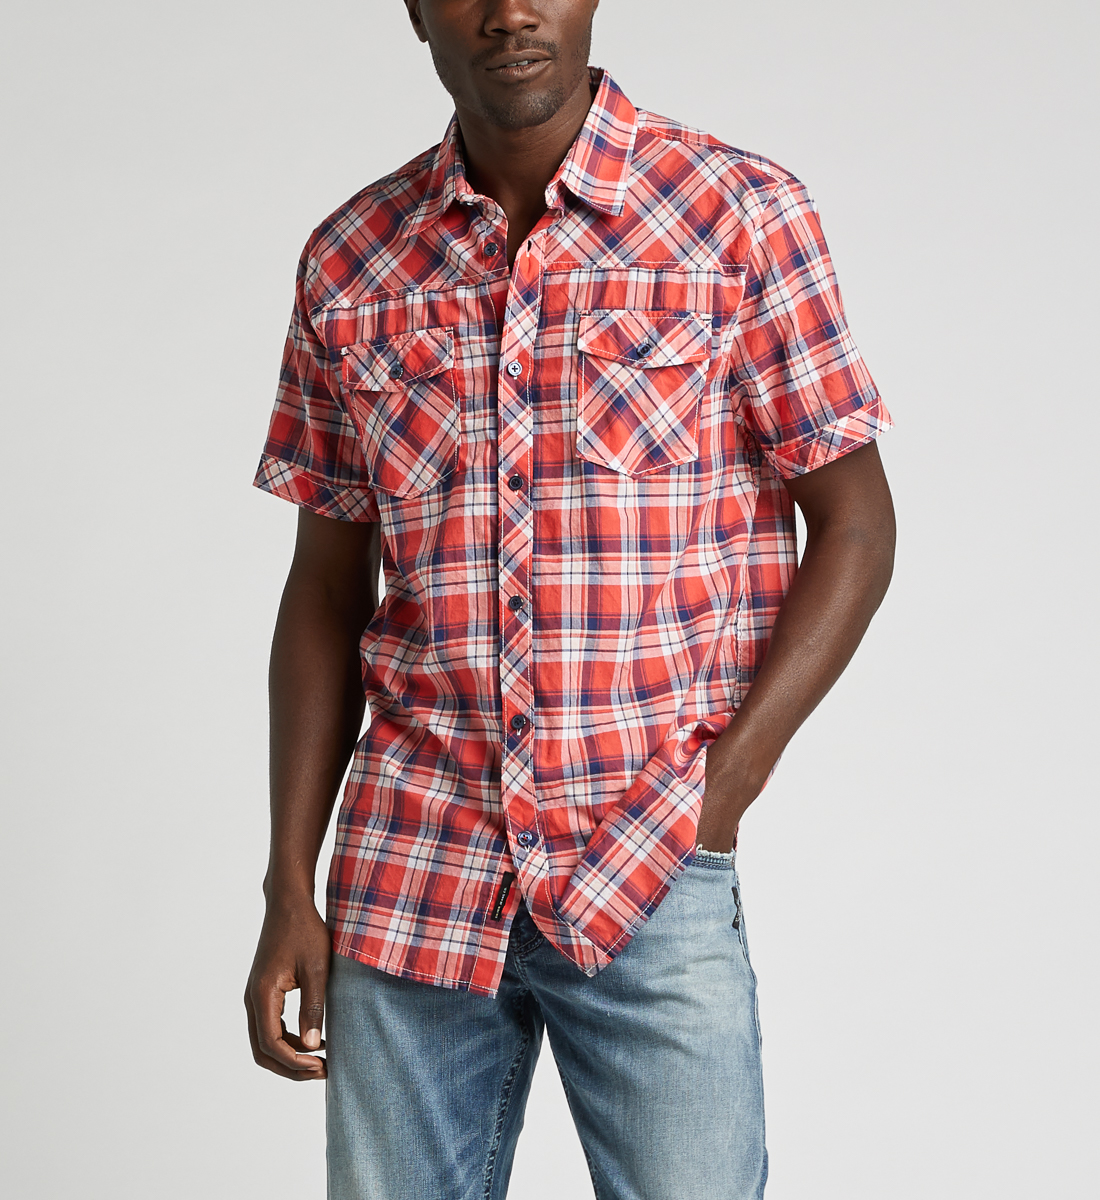 Cassidy Plaid Shirt Front